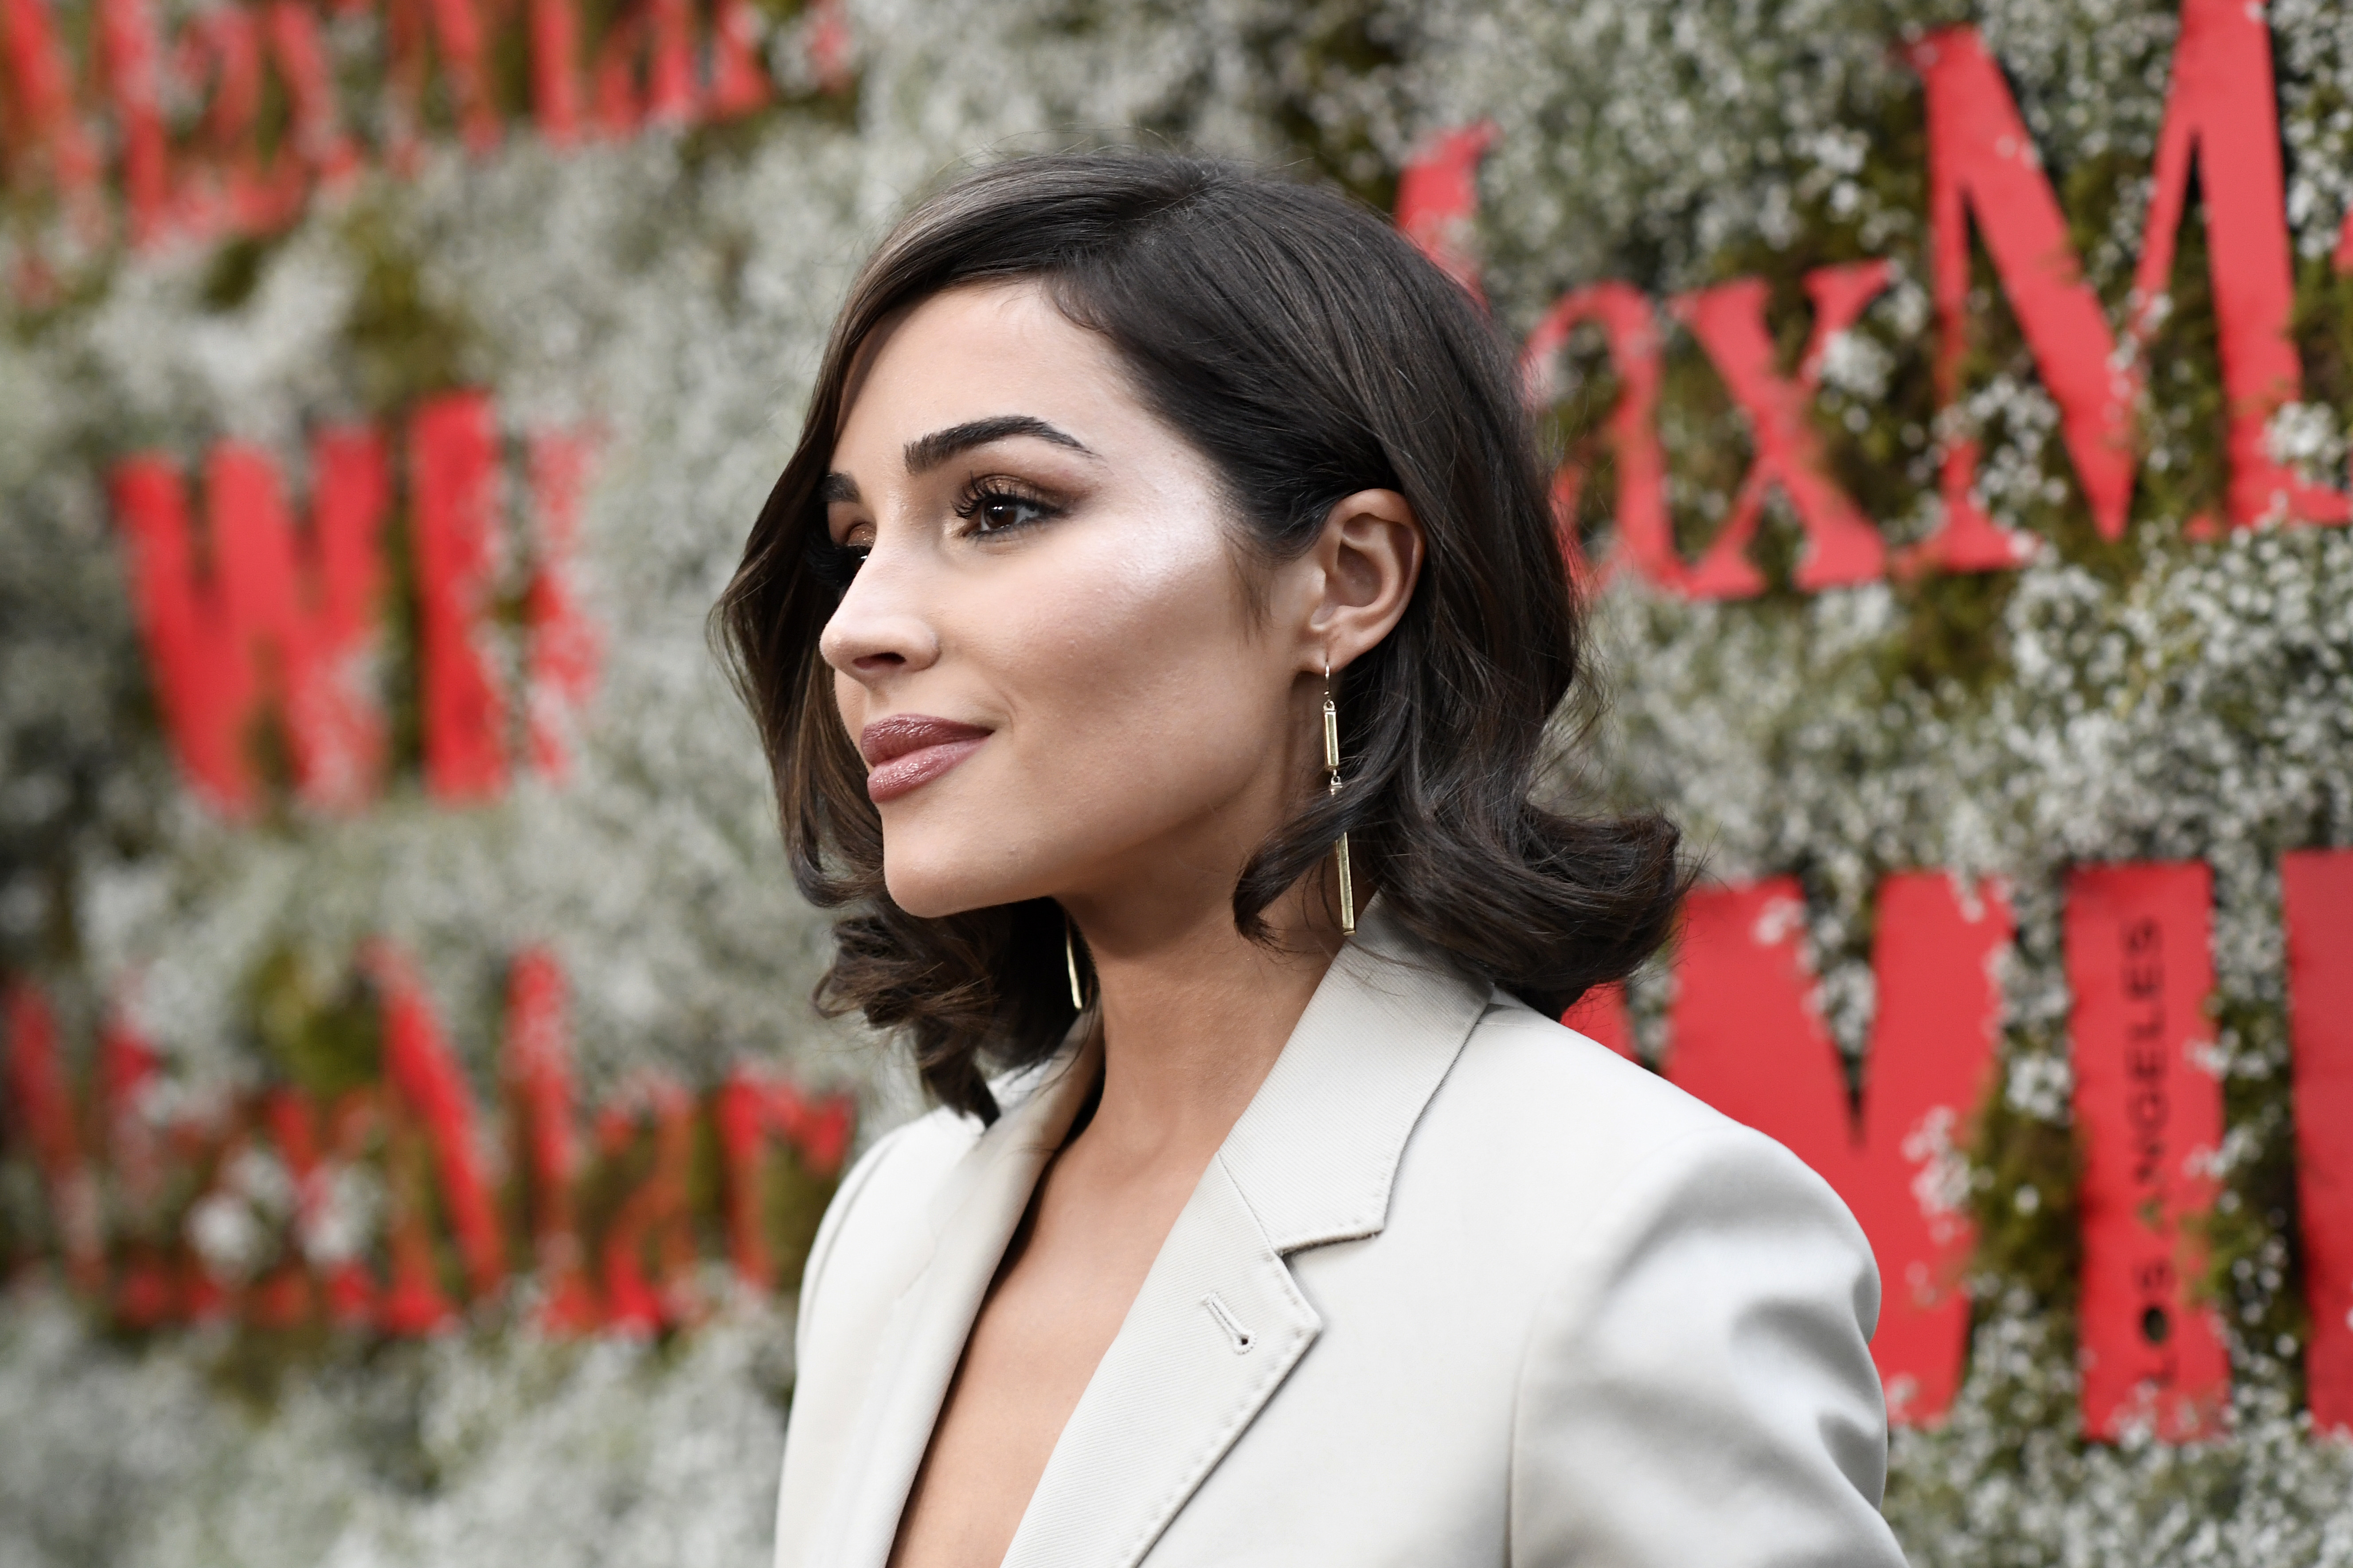 Olivia Culpo at an LA event on 11 June 2019 [Photo: Getty]